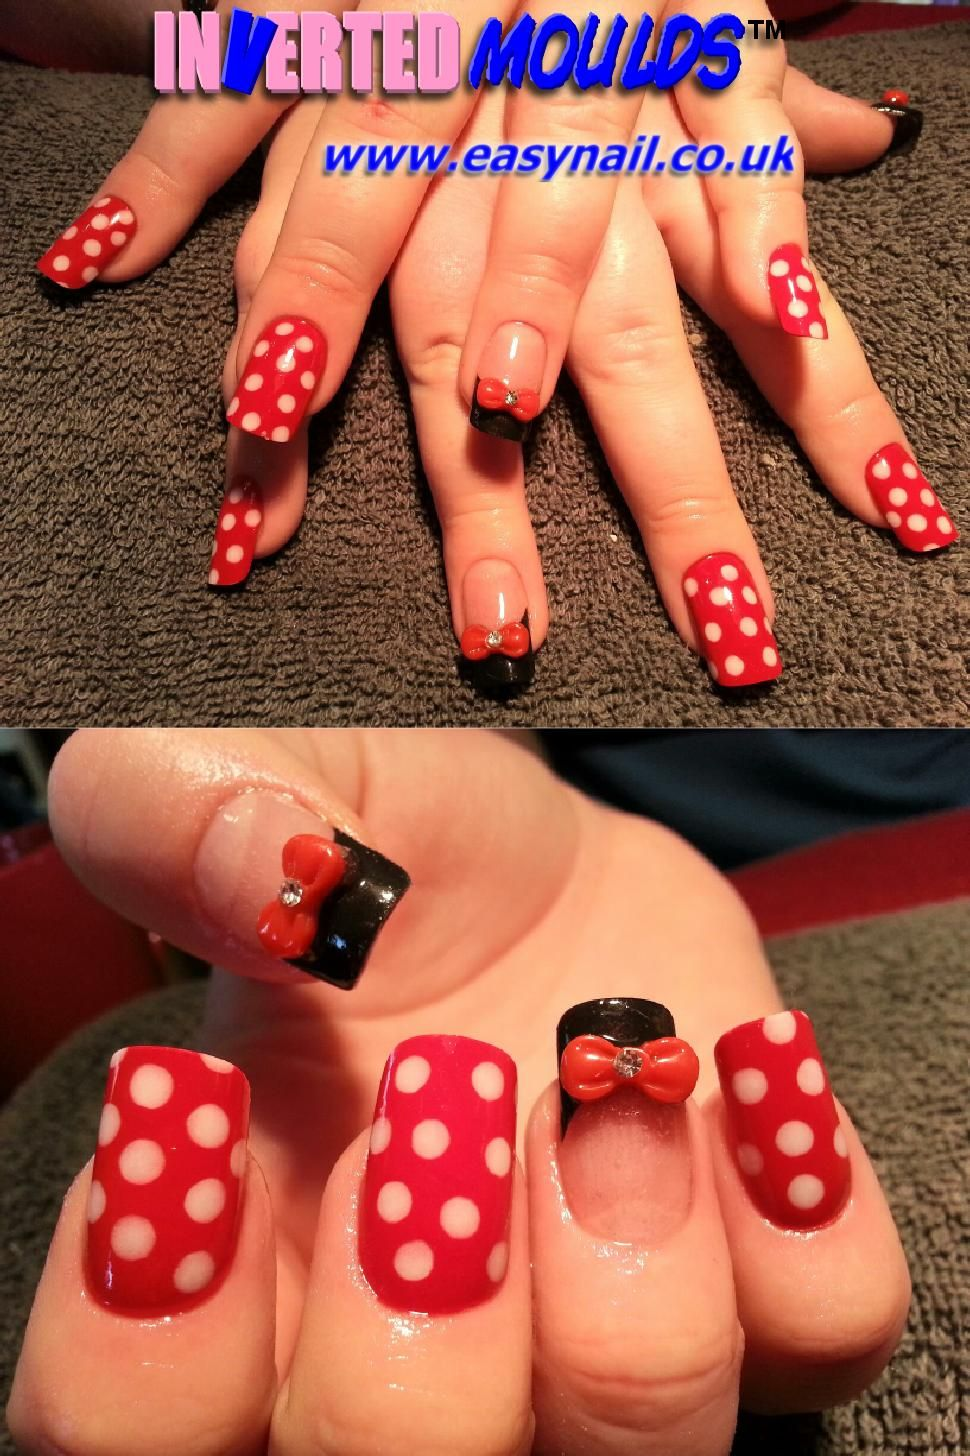 MINNIE MOUSE Inverted Moulds By Cheryl Hammond 'Nails By